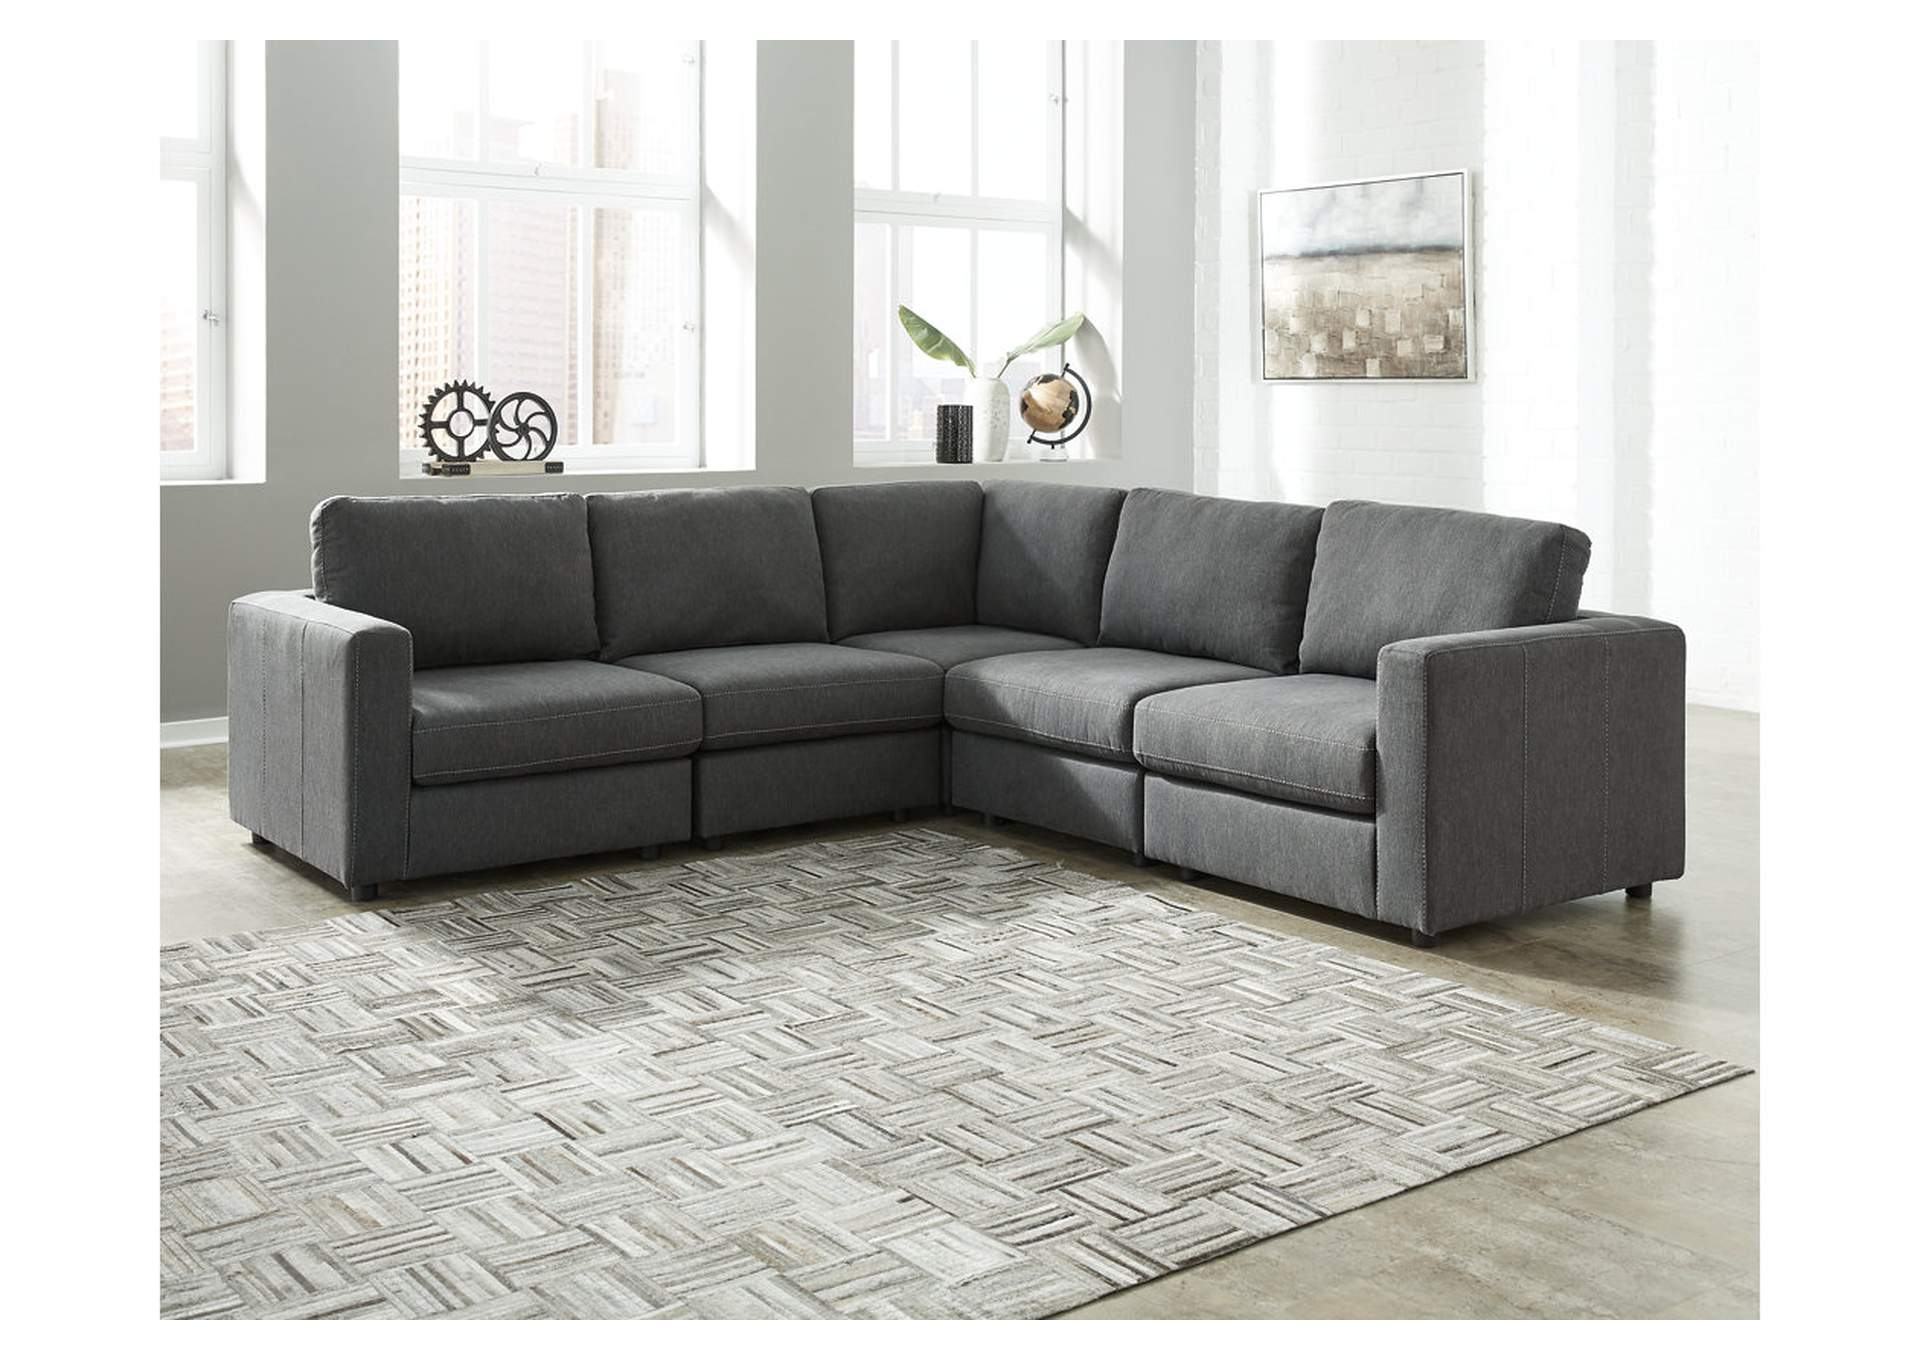 Candela 5-Piece Sectional,Signature Design By Ashley